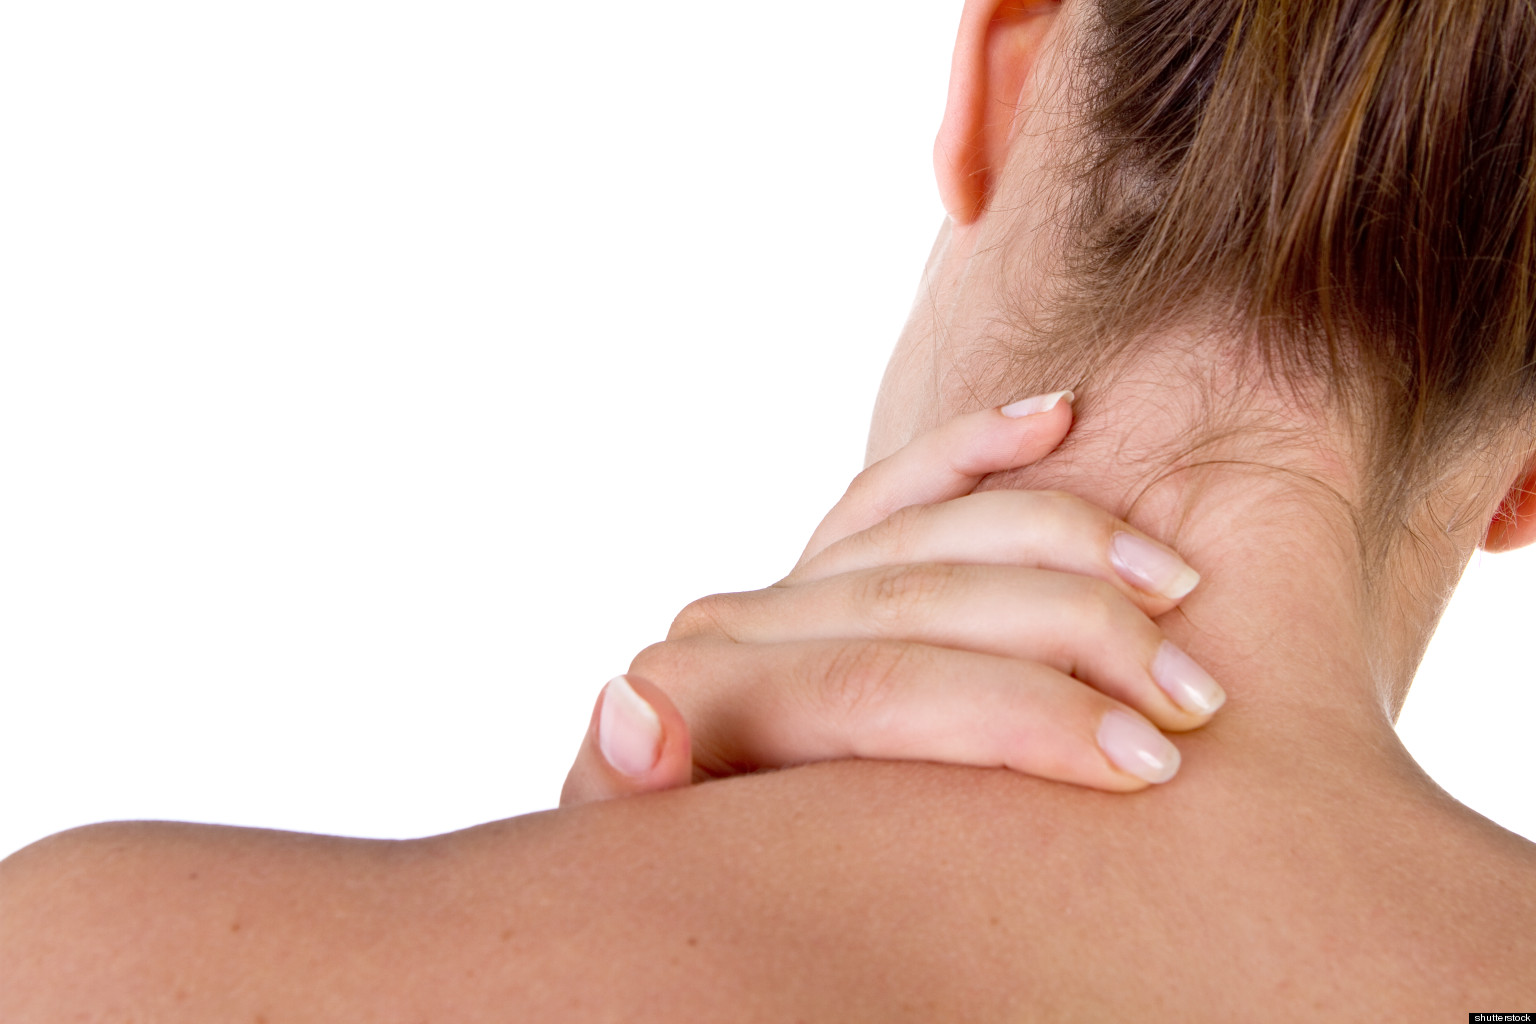 Neck Cracking Dangerous Spinal Manipulation May Increase